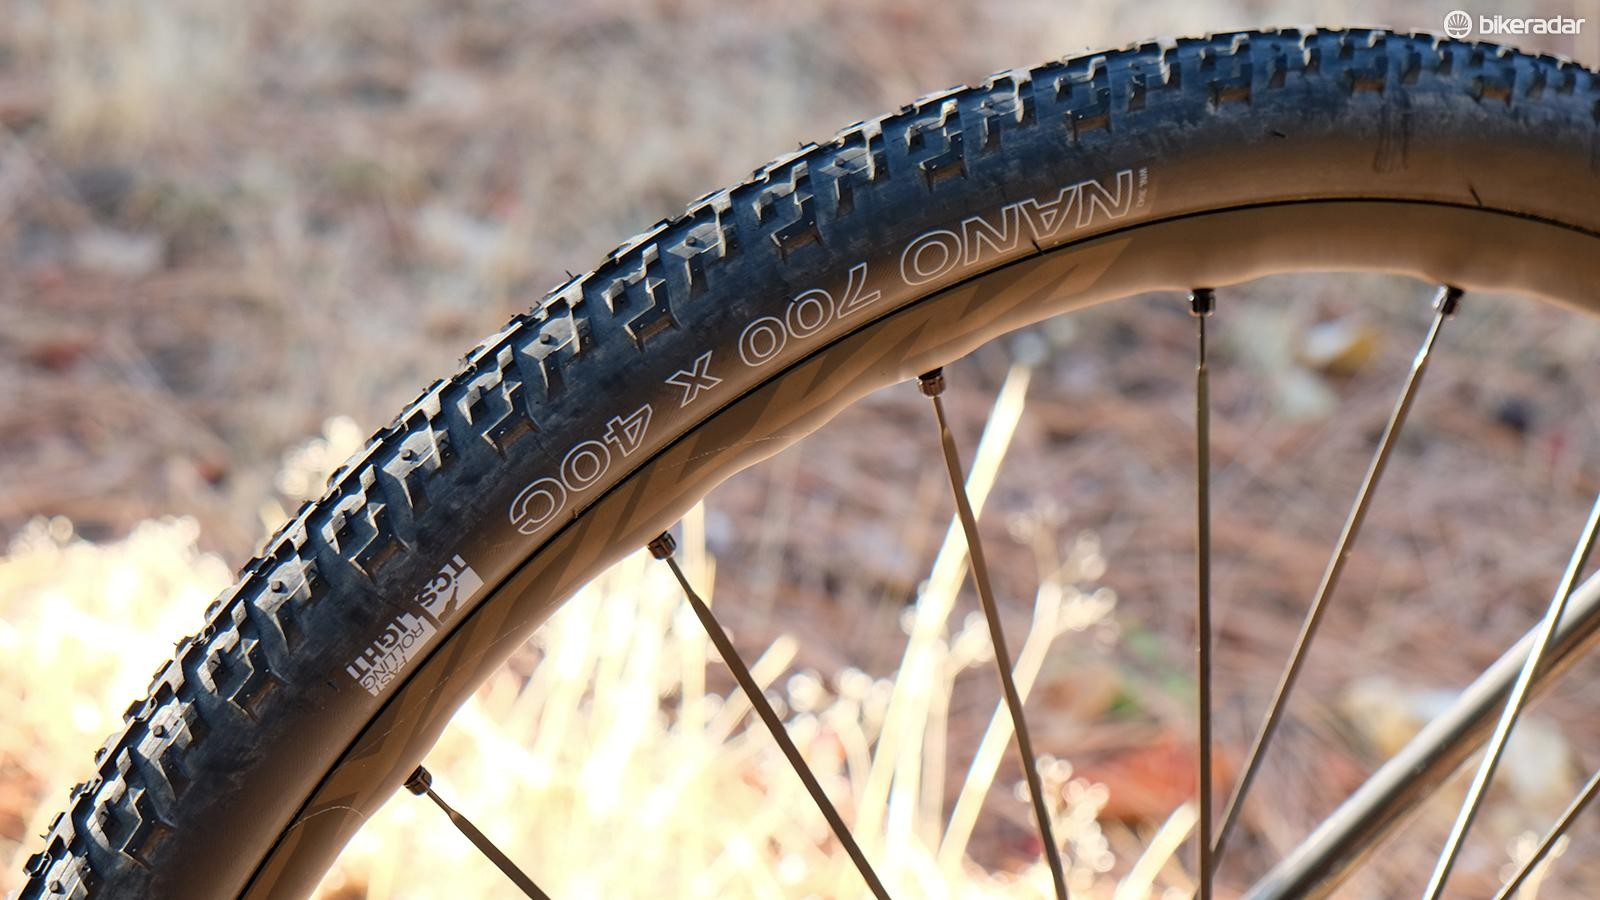 The round profile and elevated center tread give the Nano 40c great straight-line speed